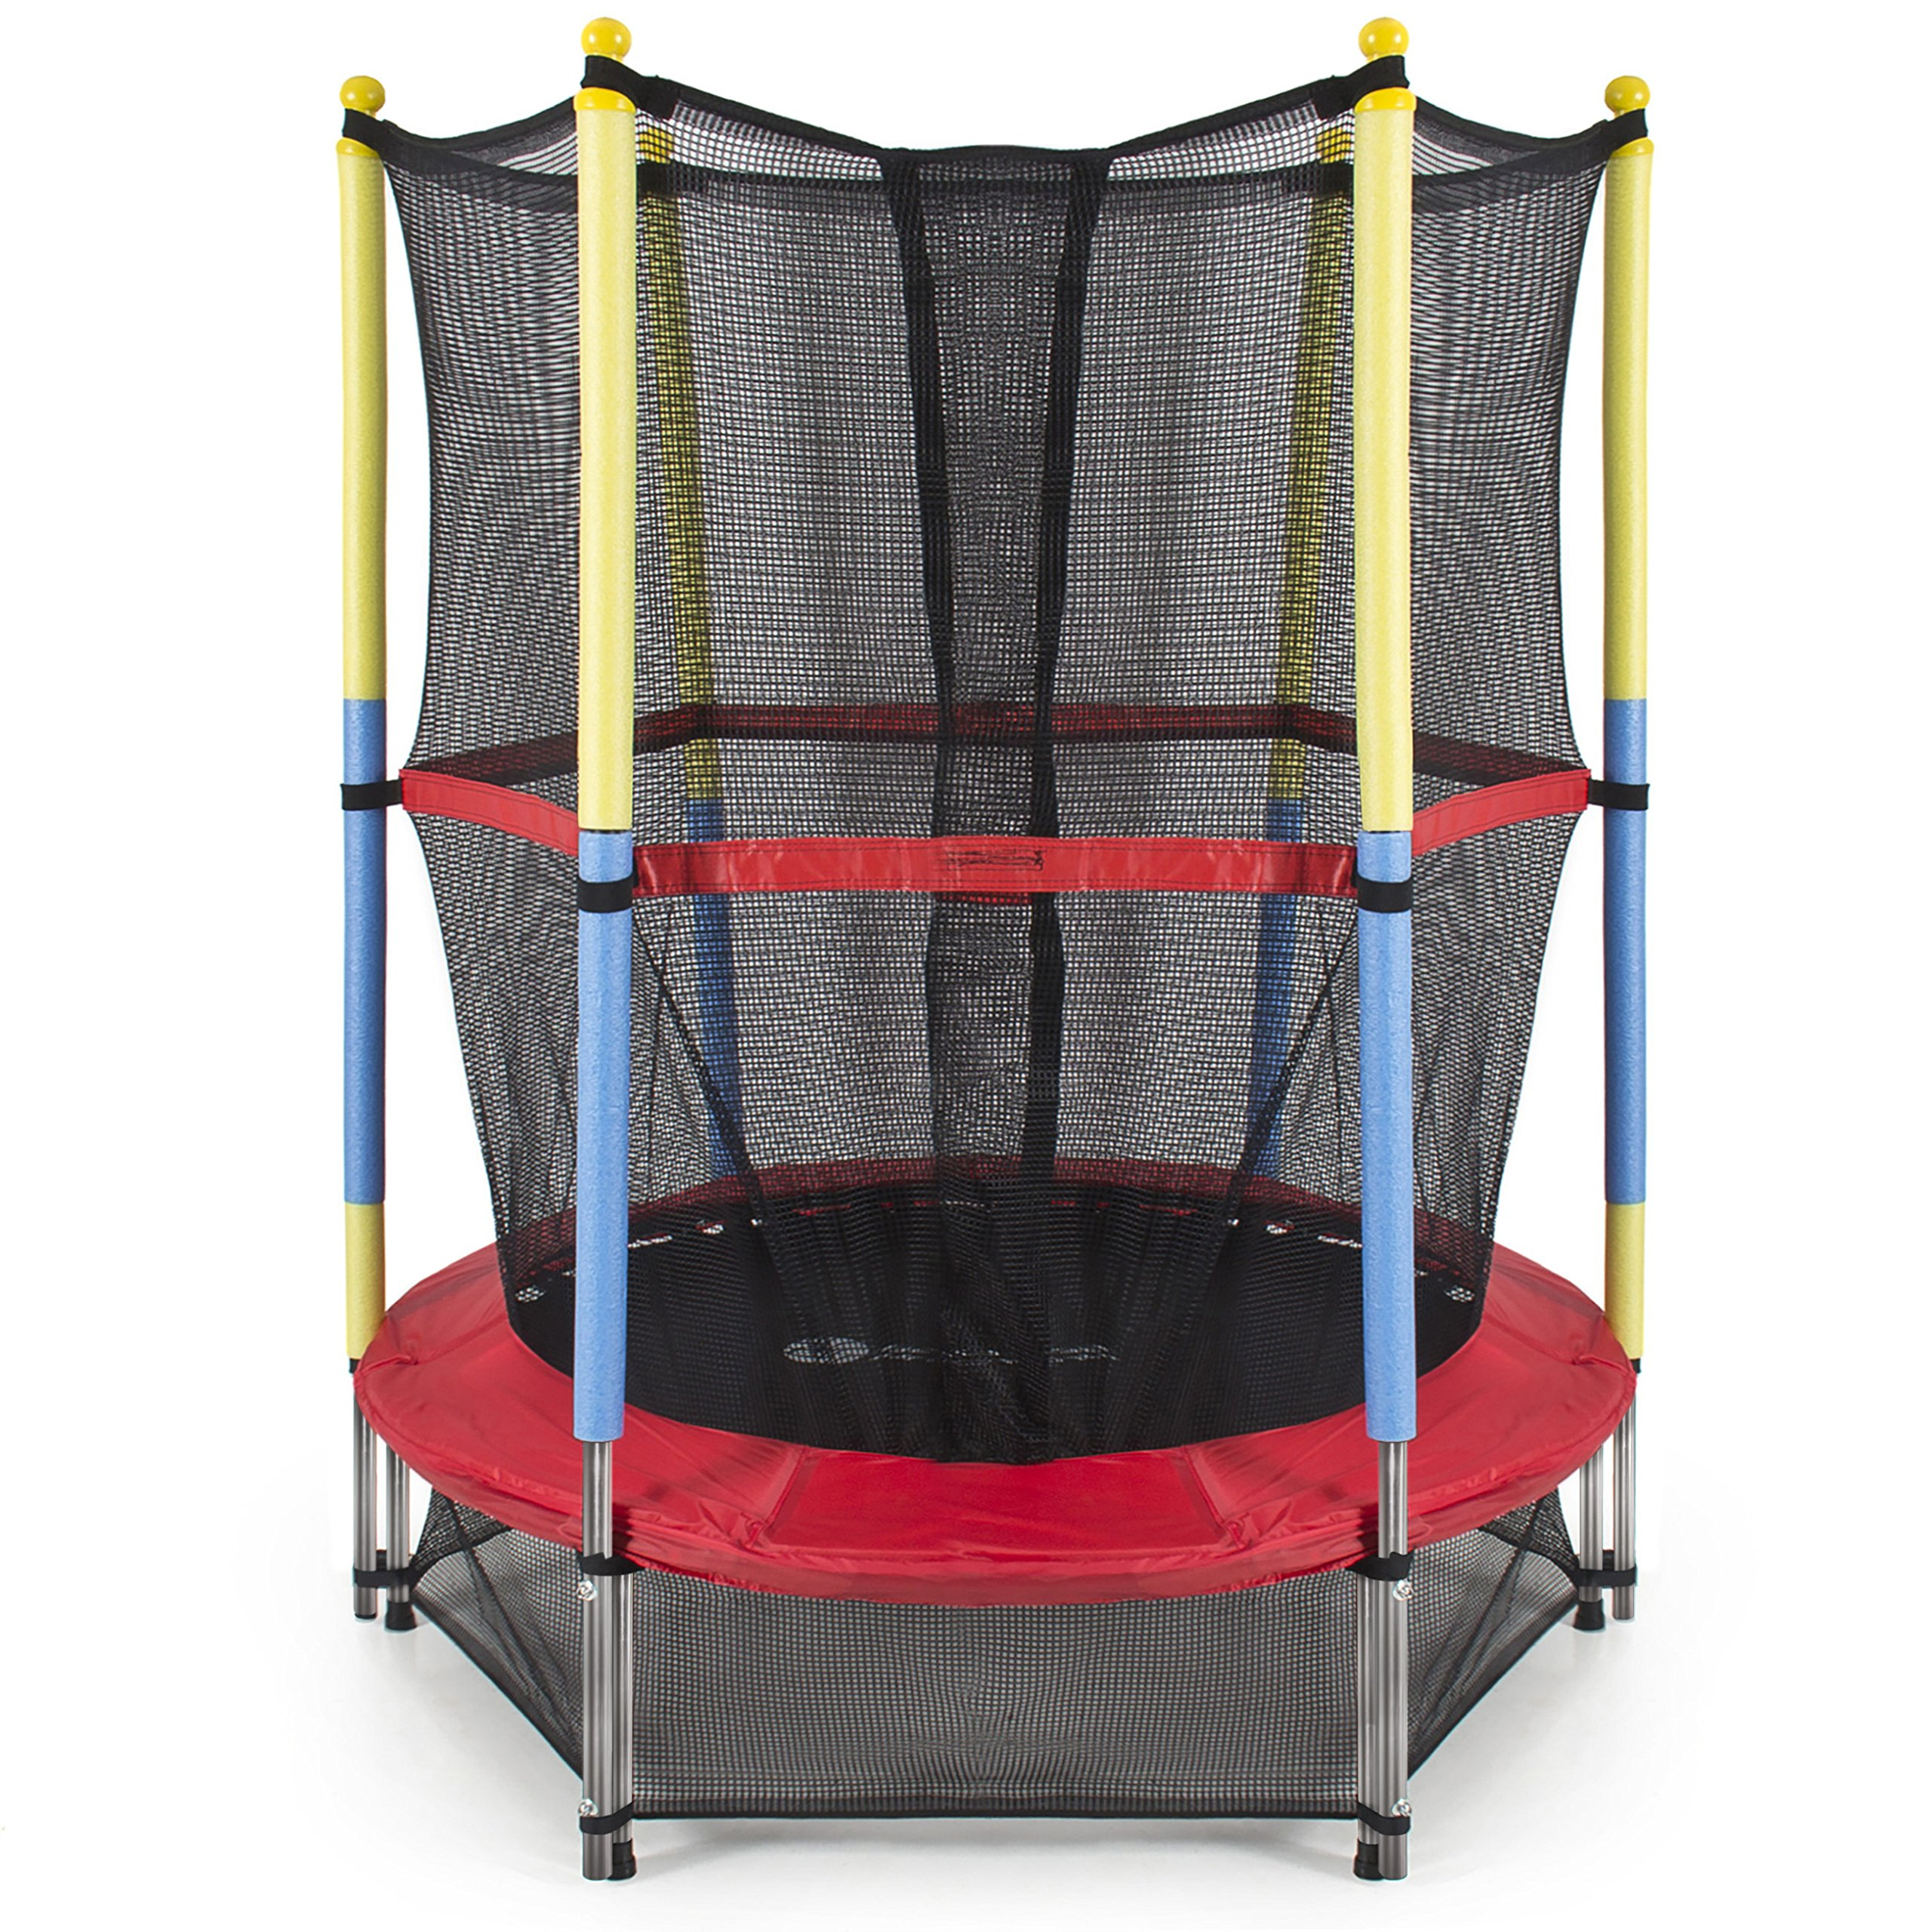 Best Choice Products 55'' Round Kids Mini Trampoline w/ Enclosure Net Pad Rebounder Outdoor Exercise